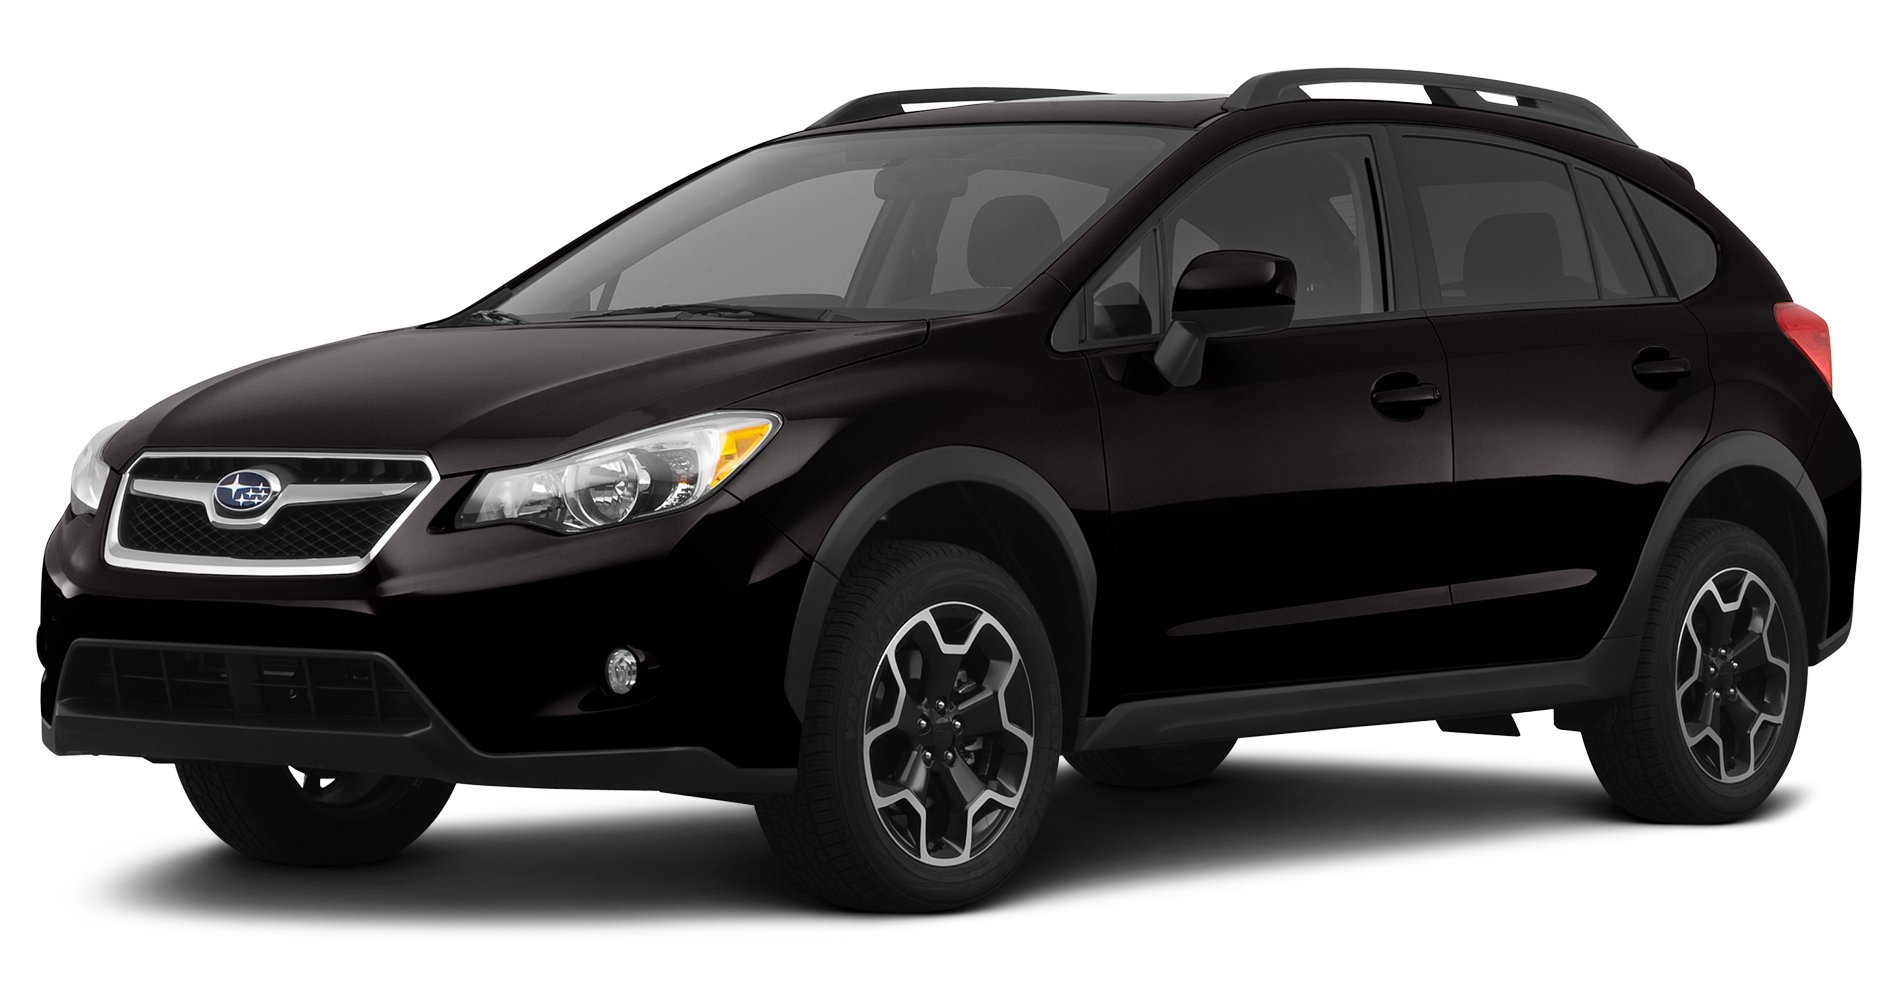 2013 subaru outback reviews images and specs vehicles. Black Bedroom Furniture Sets. Home Design Ideas